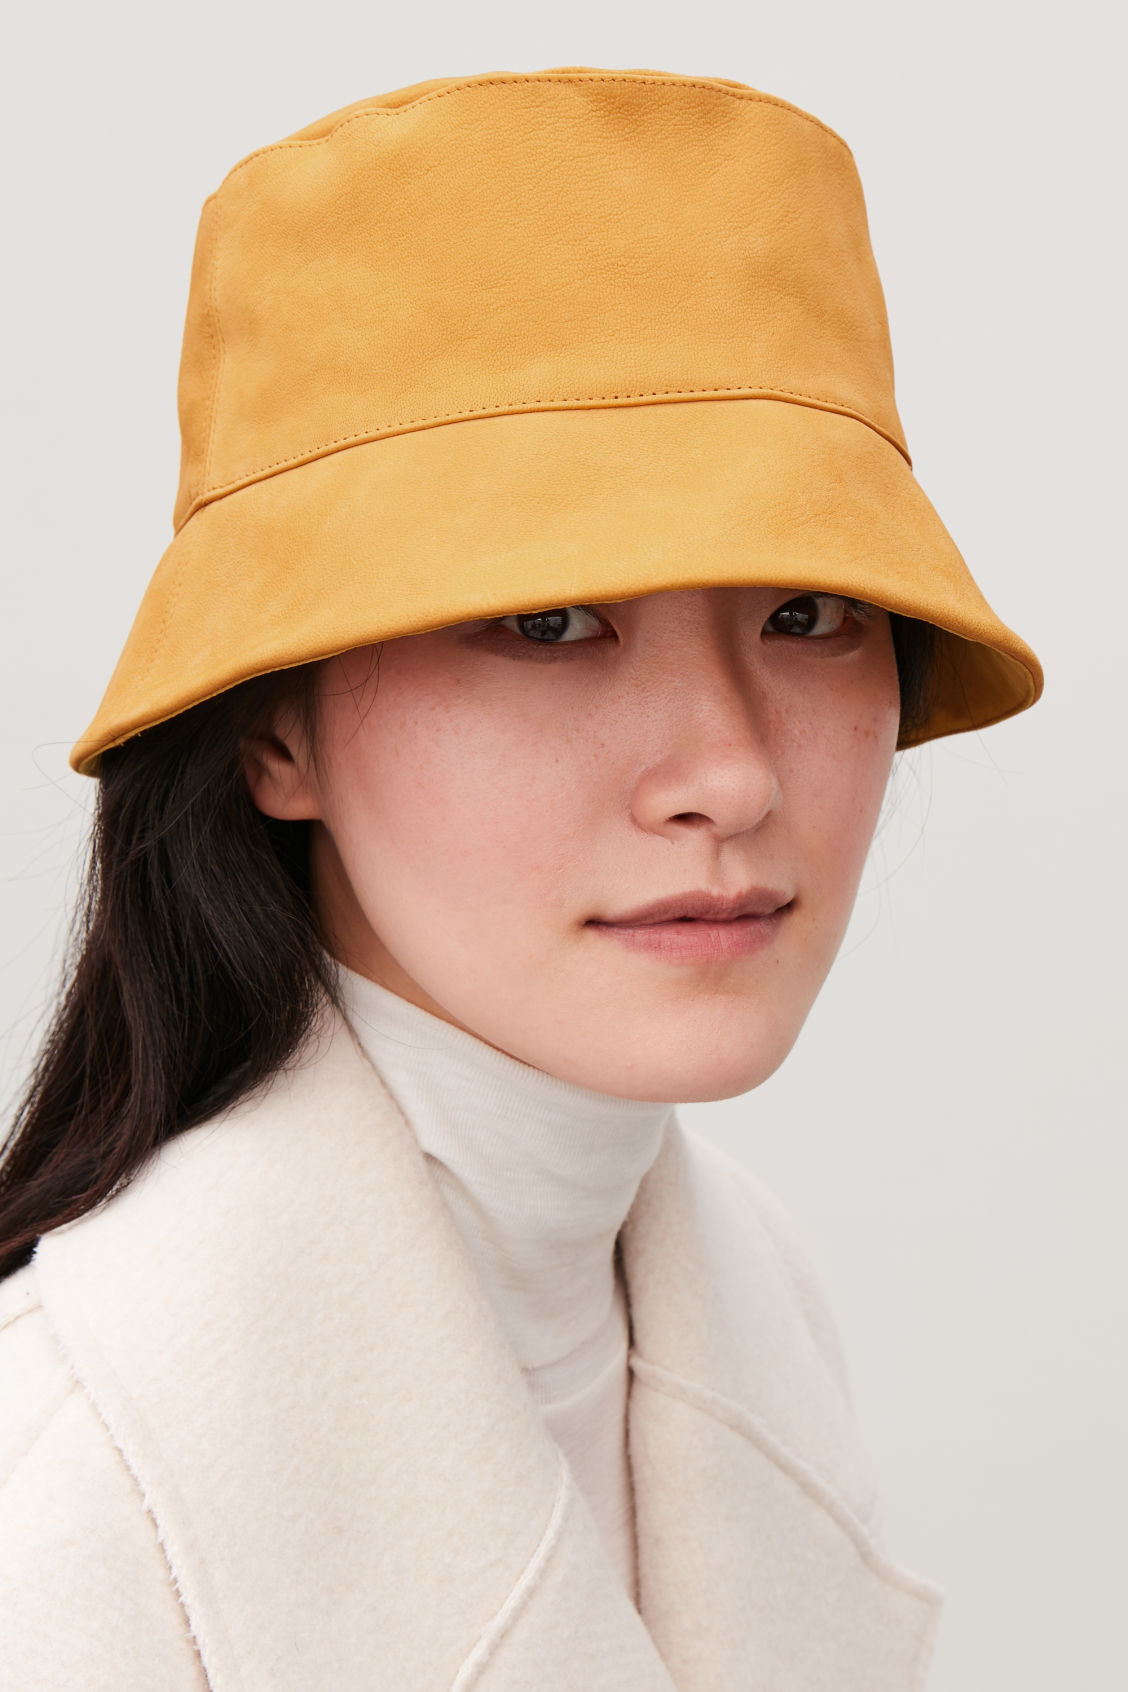 NUBUCK LEATHER BUCKET HAT - Mustard - Hats Scarves and ... de67d2eb2b9